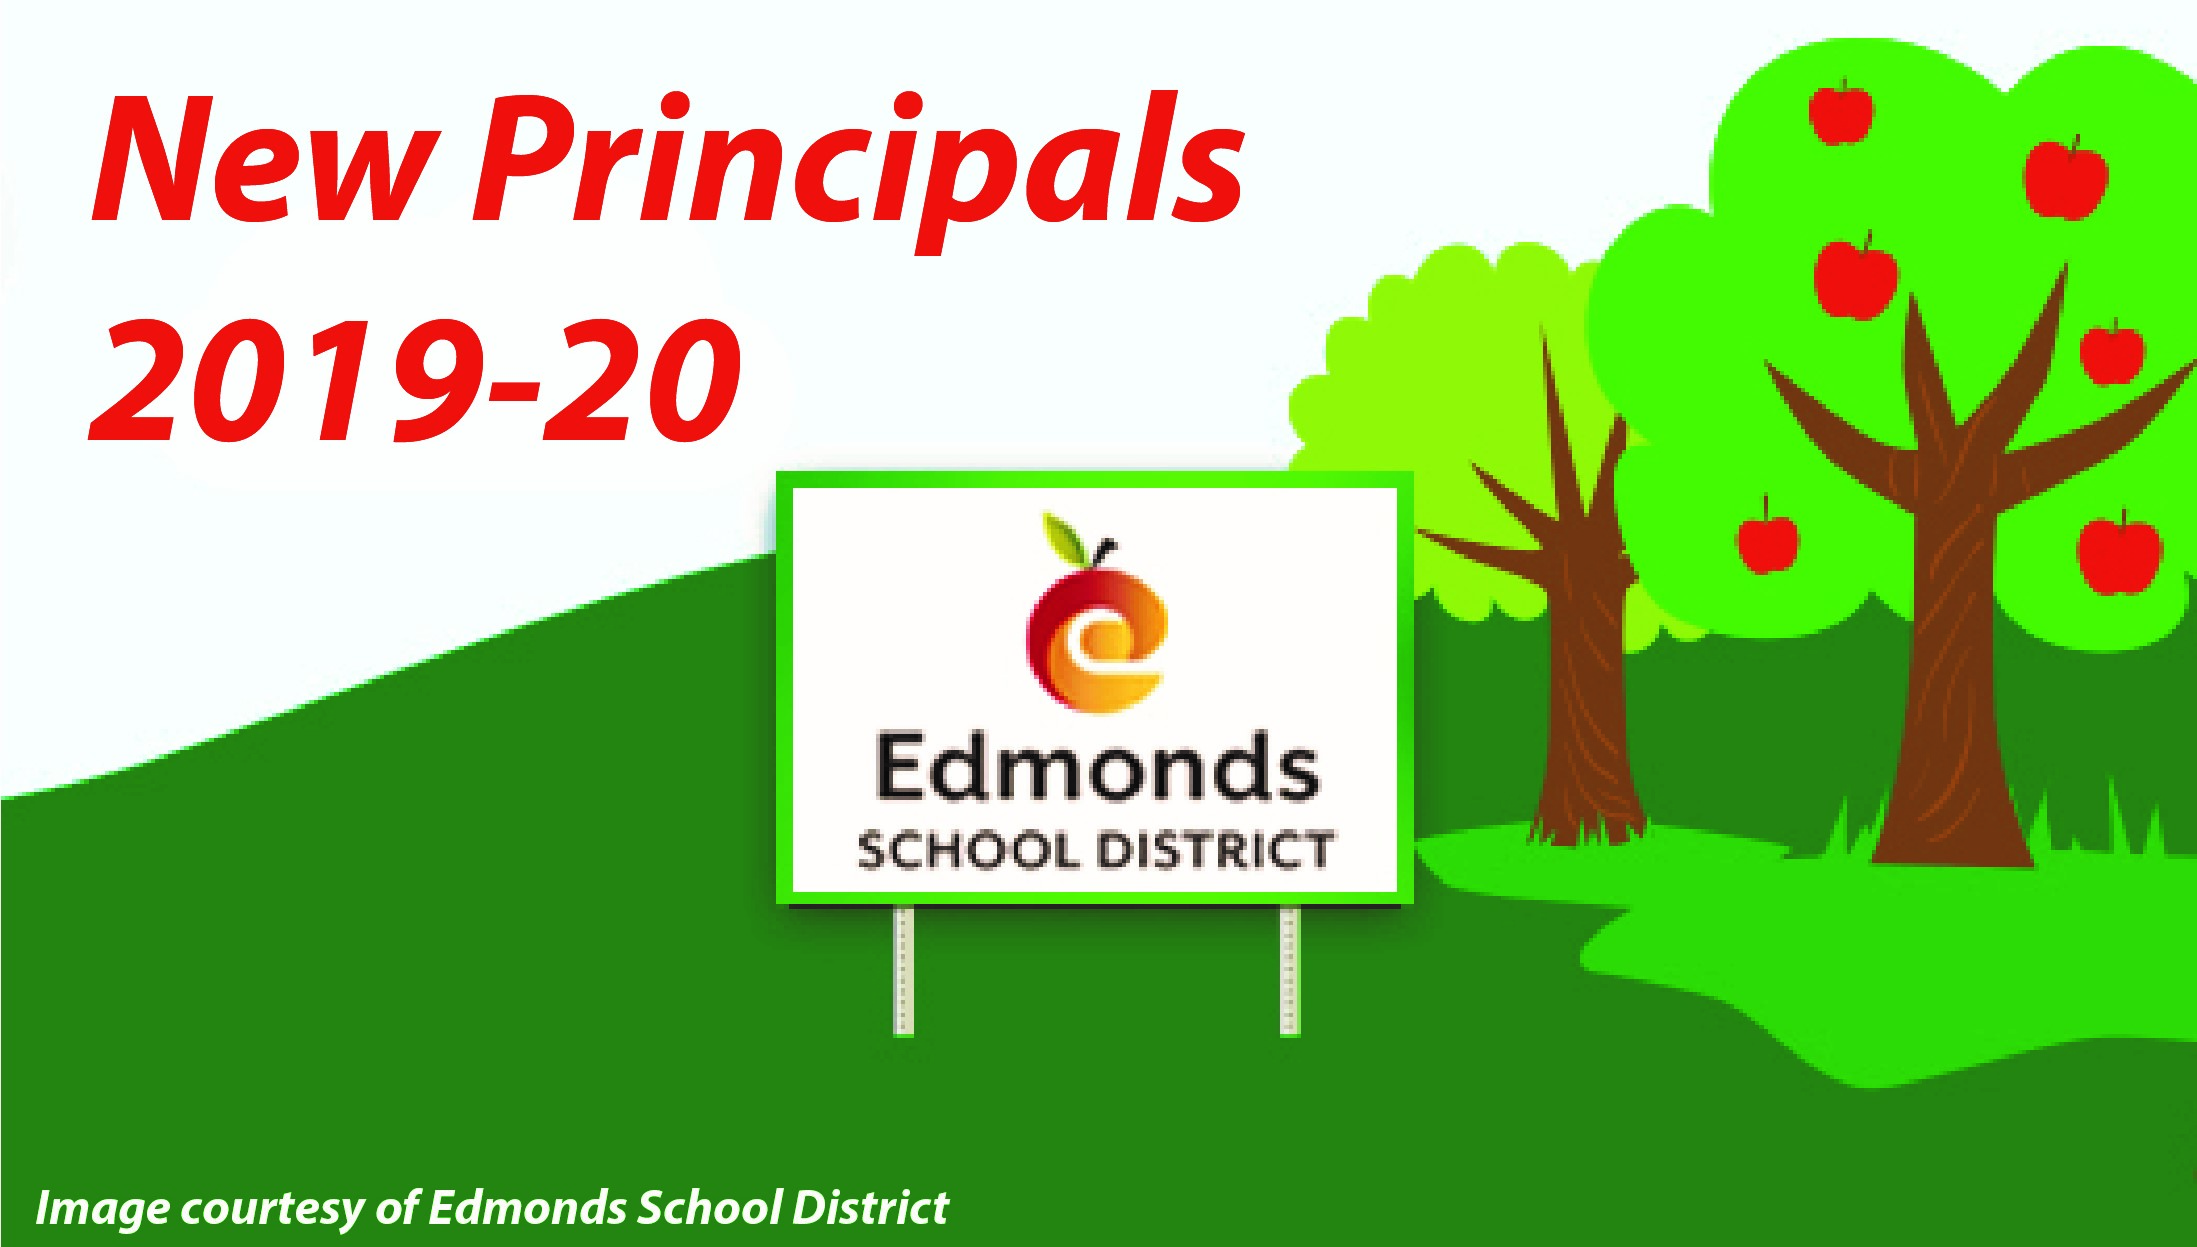 Get to know your new 2019-20 Edmonds school district